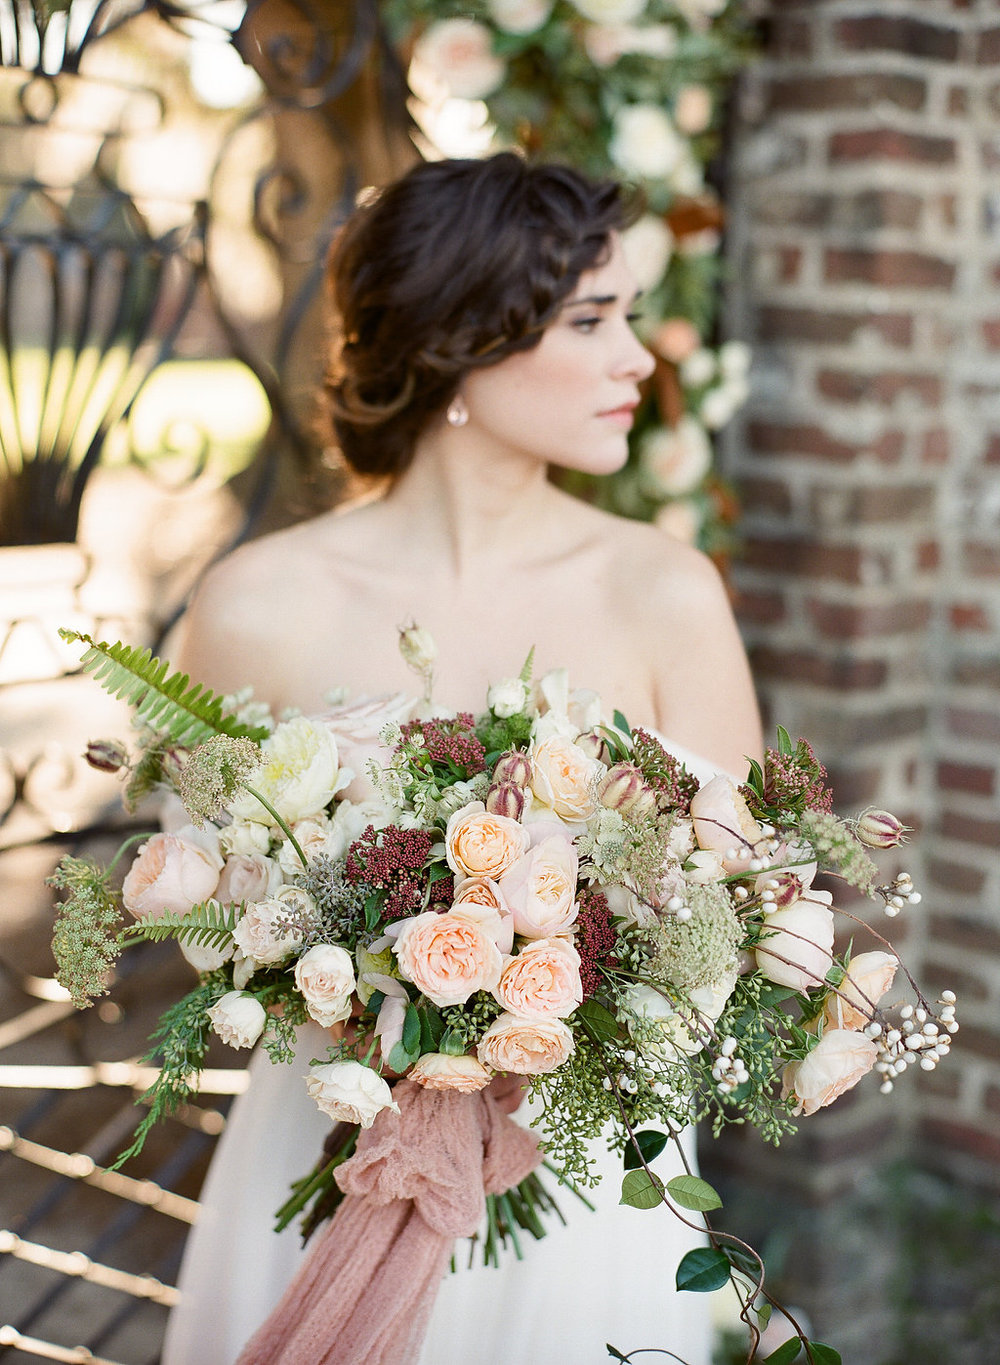 the-happy-bloom-ivory-and-beau-bridal-boutique-trendy-bride-magazine-august-floral-design-savannah-bridal-boutique-lafayette-sarah-seven-boone-hall-plantation-wedding-southern-wedding-charleston-wedding-mt-pleasent-wedding-13.jpg